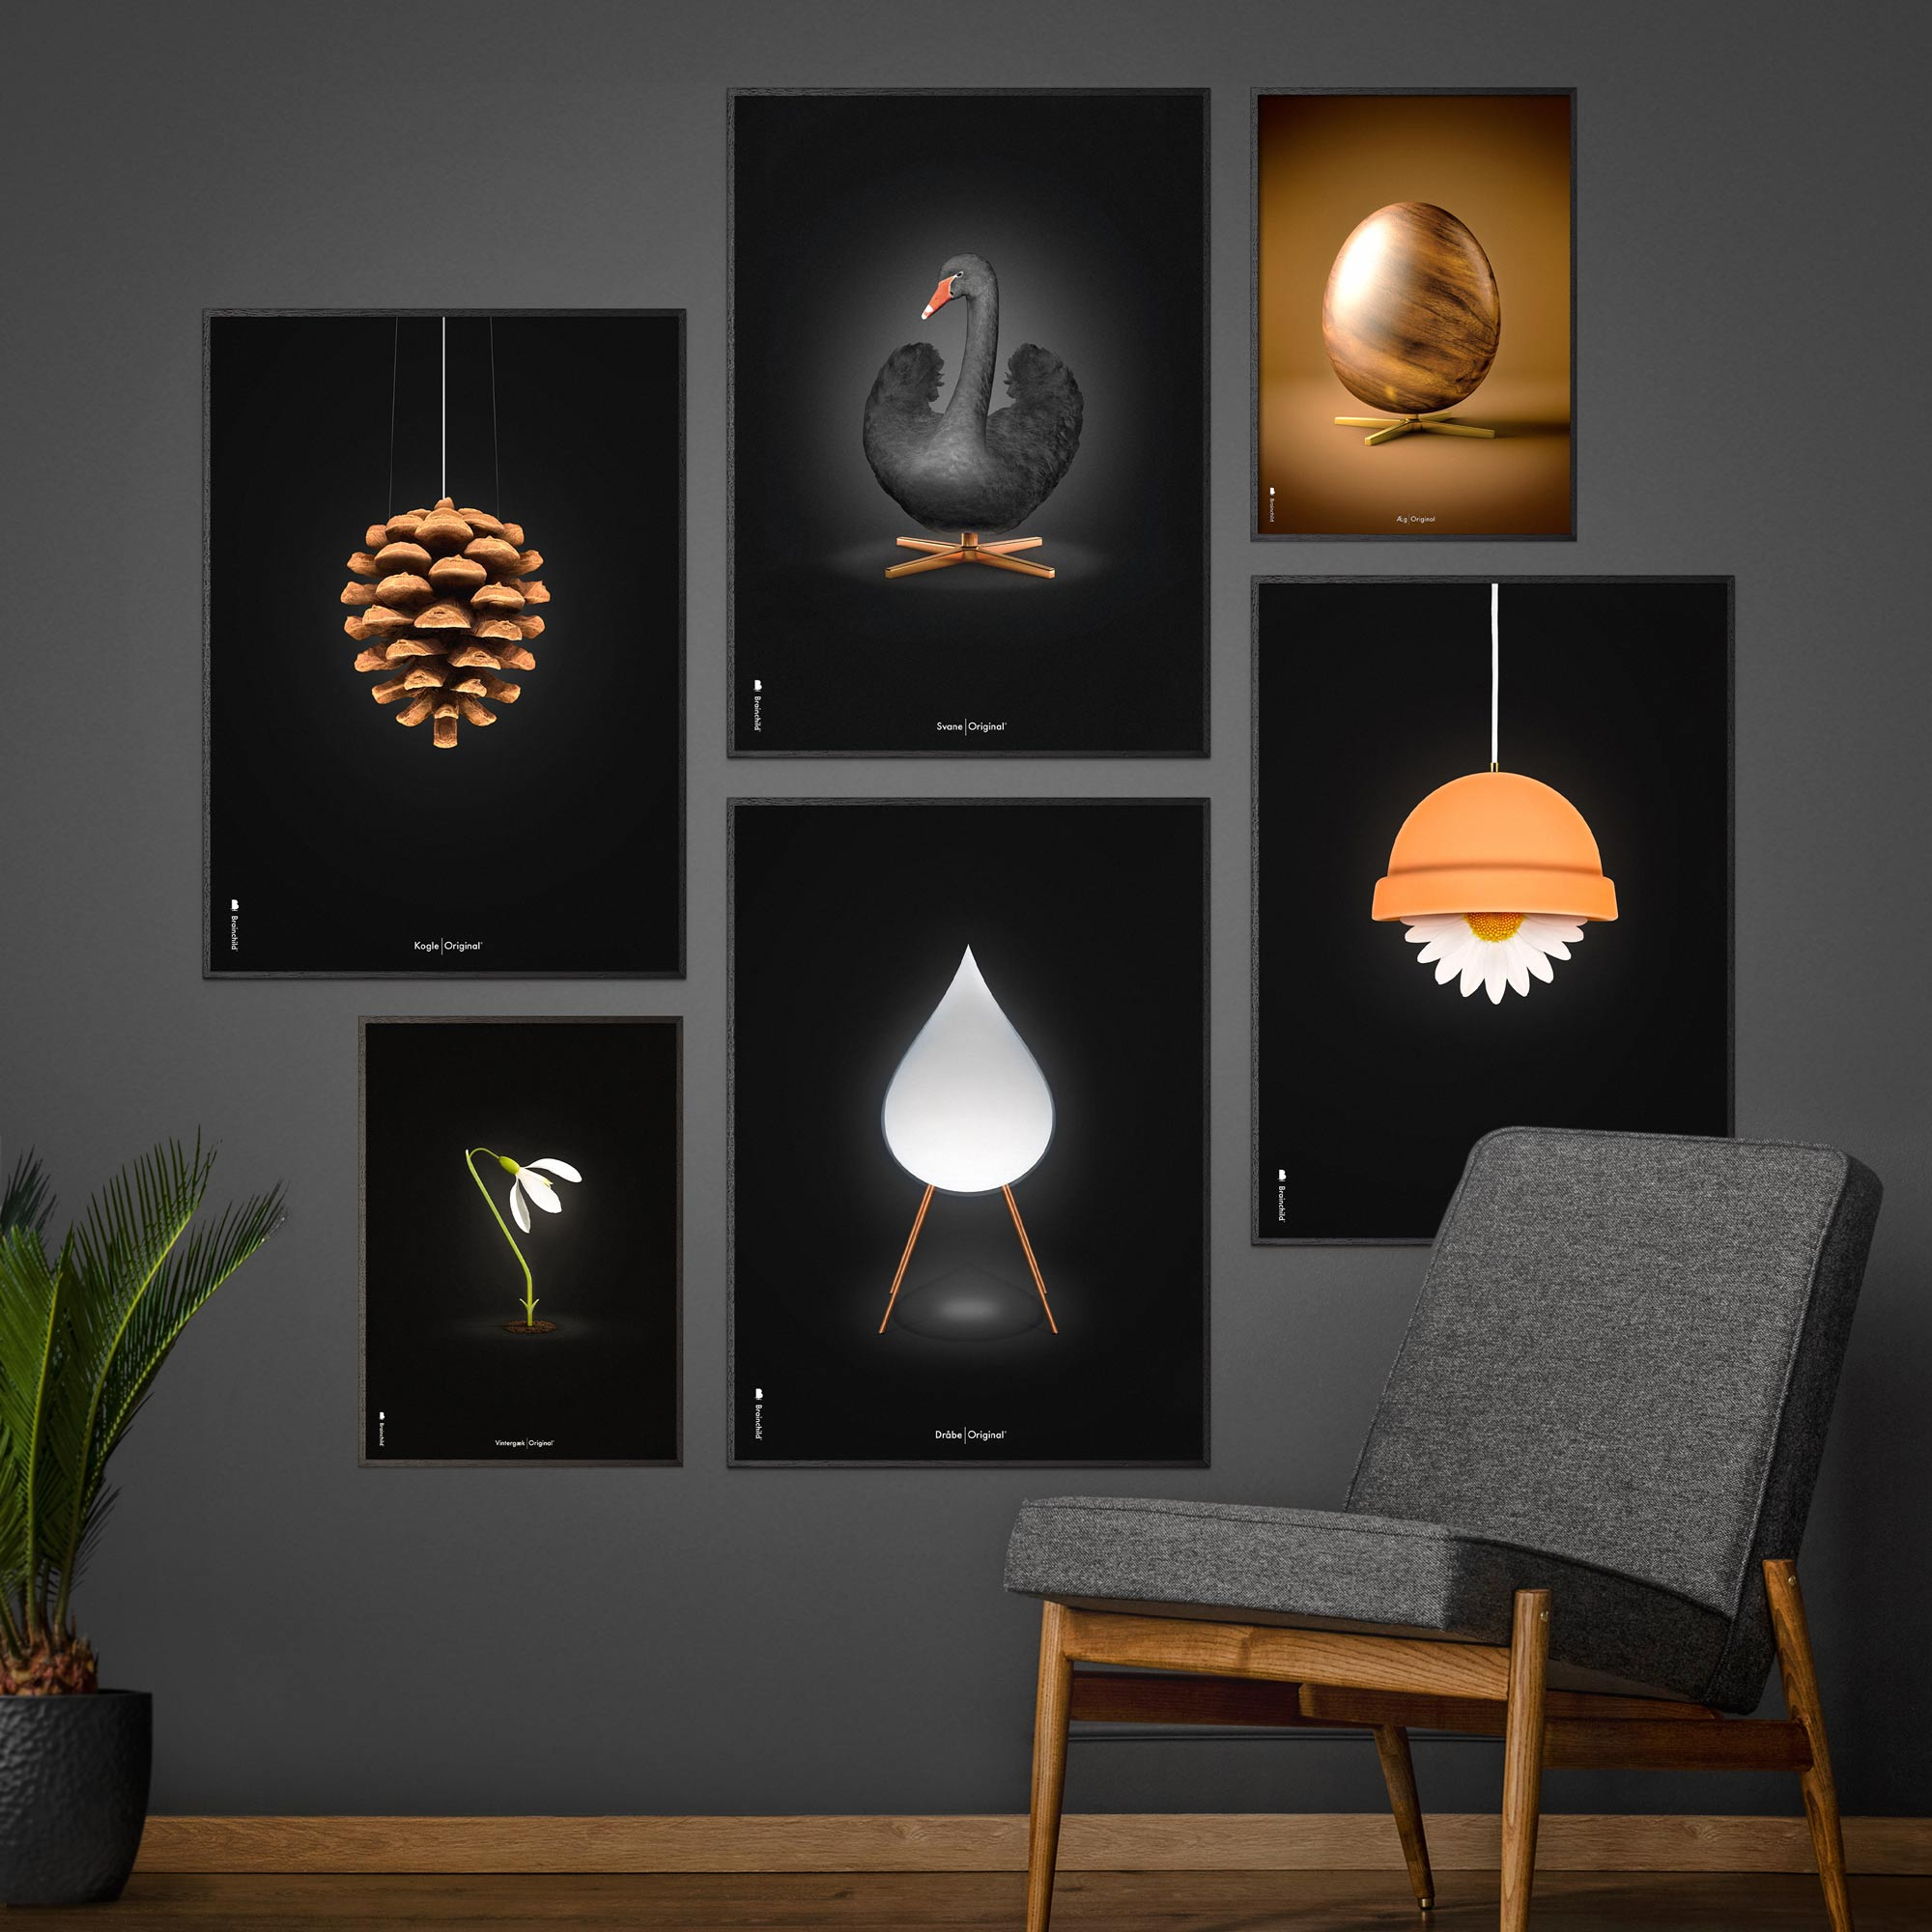 Picture wall with design posters from Brainchild